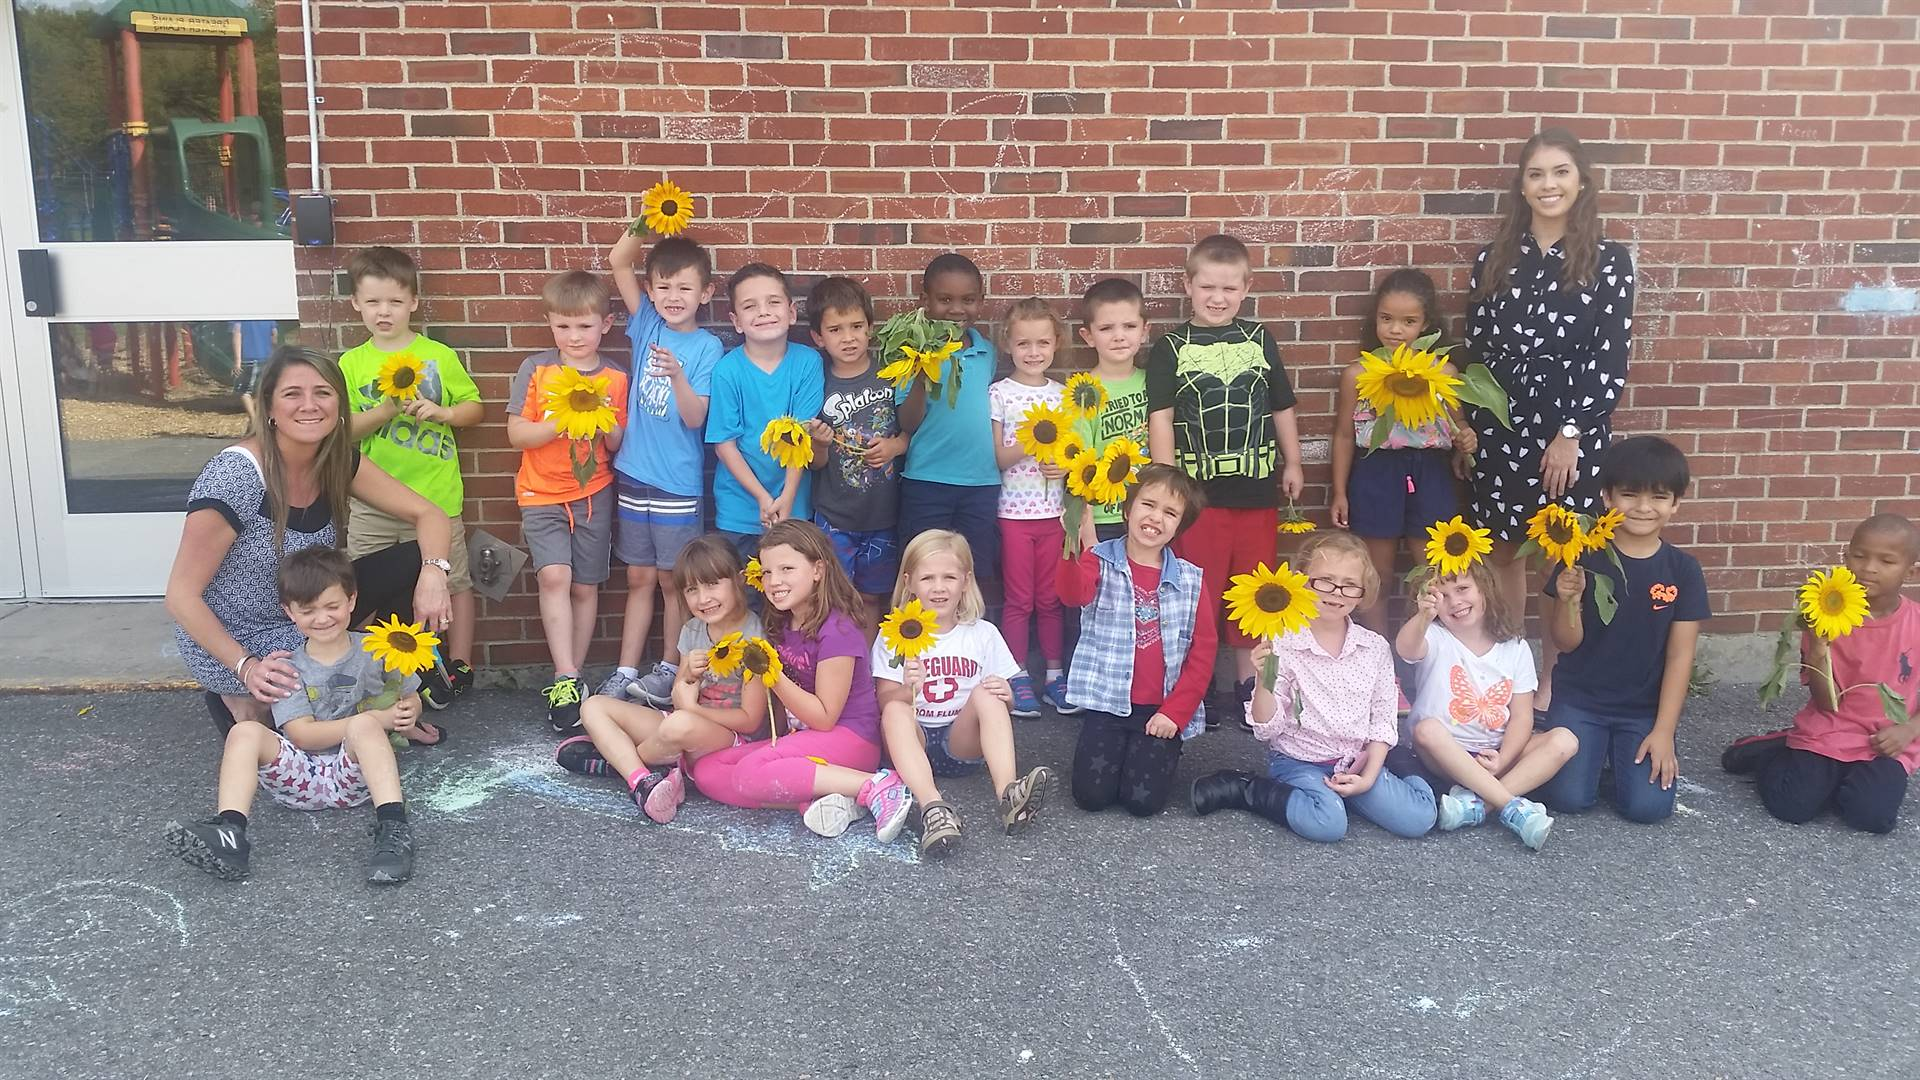 Students show sunflowers from the school garden